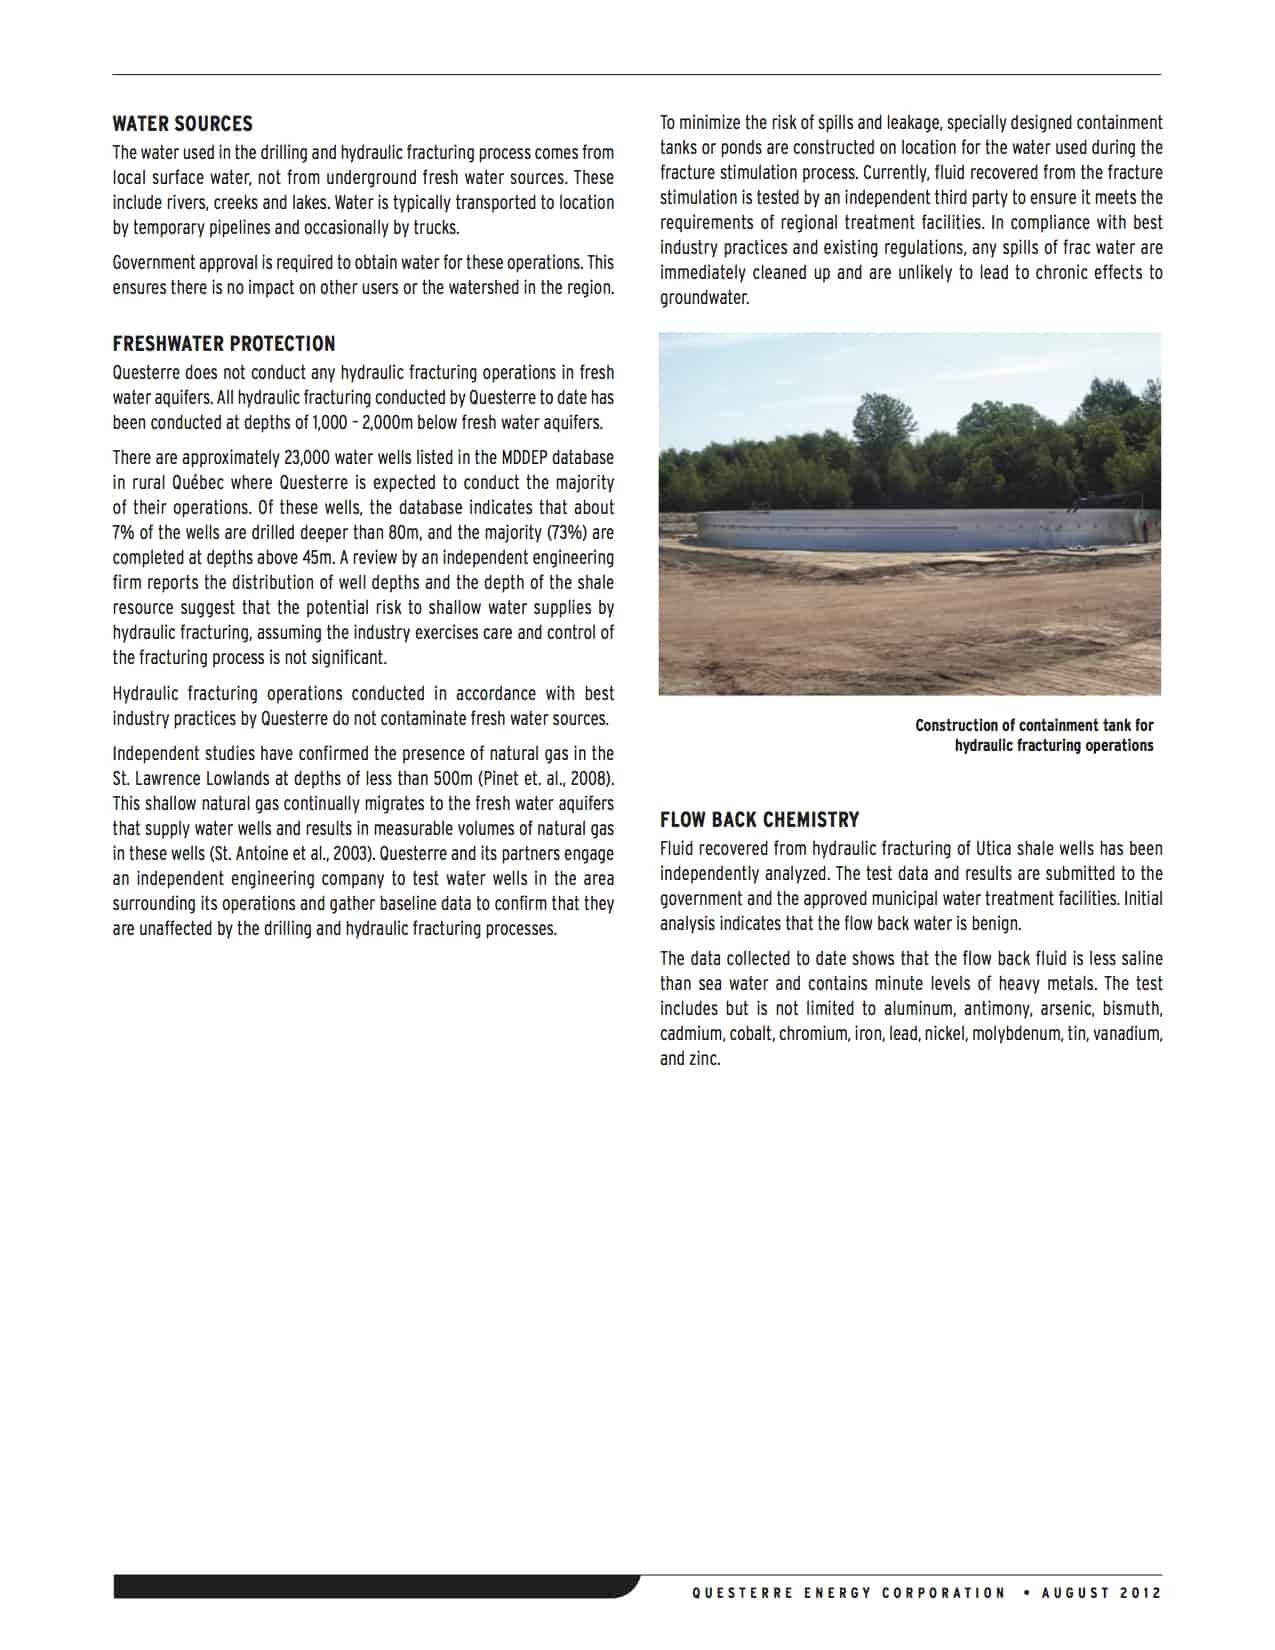 Water_Use_Backgrounder_August_2012-2 (1)